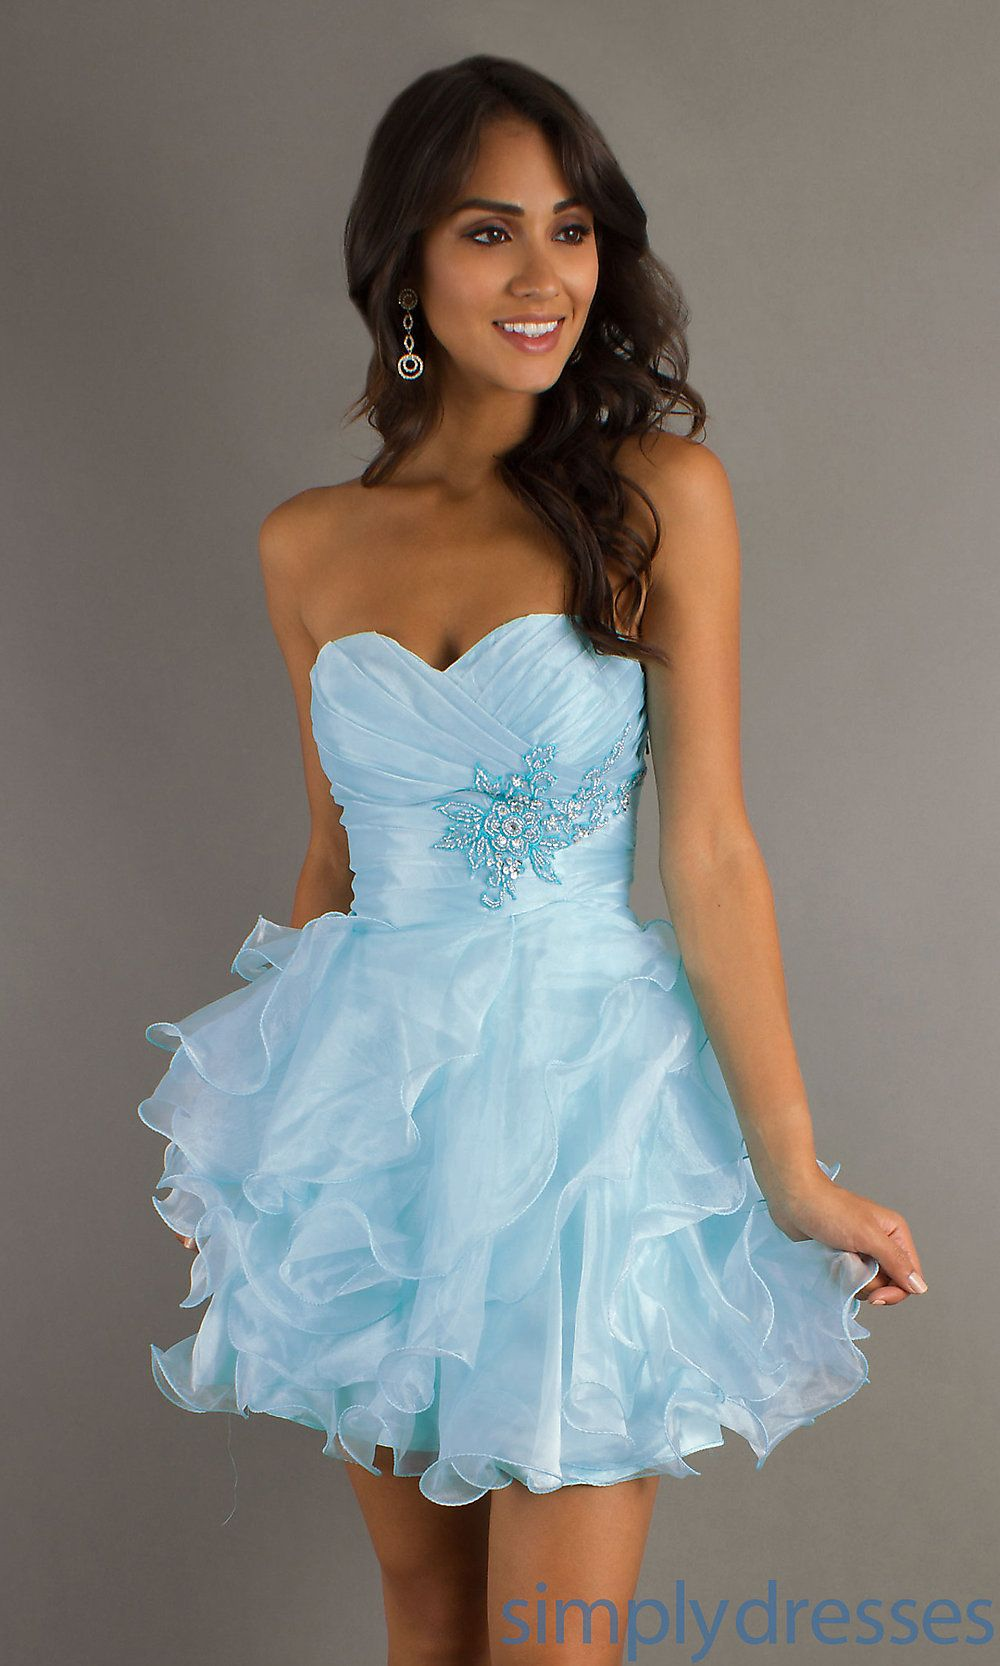 cute homecoming dresses 2013 - http://girlsdresses2014.com/prom ...